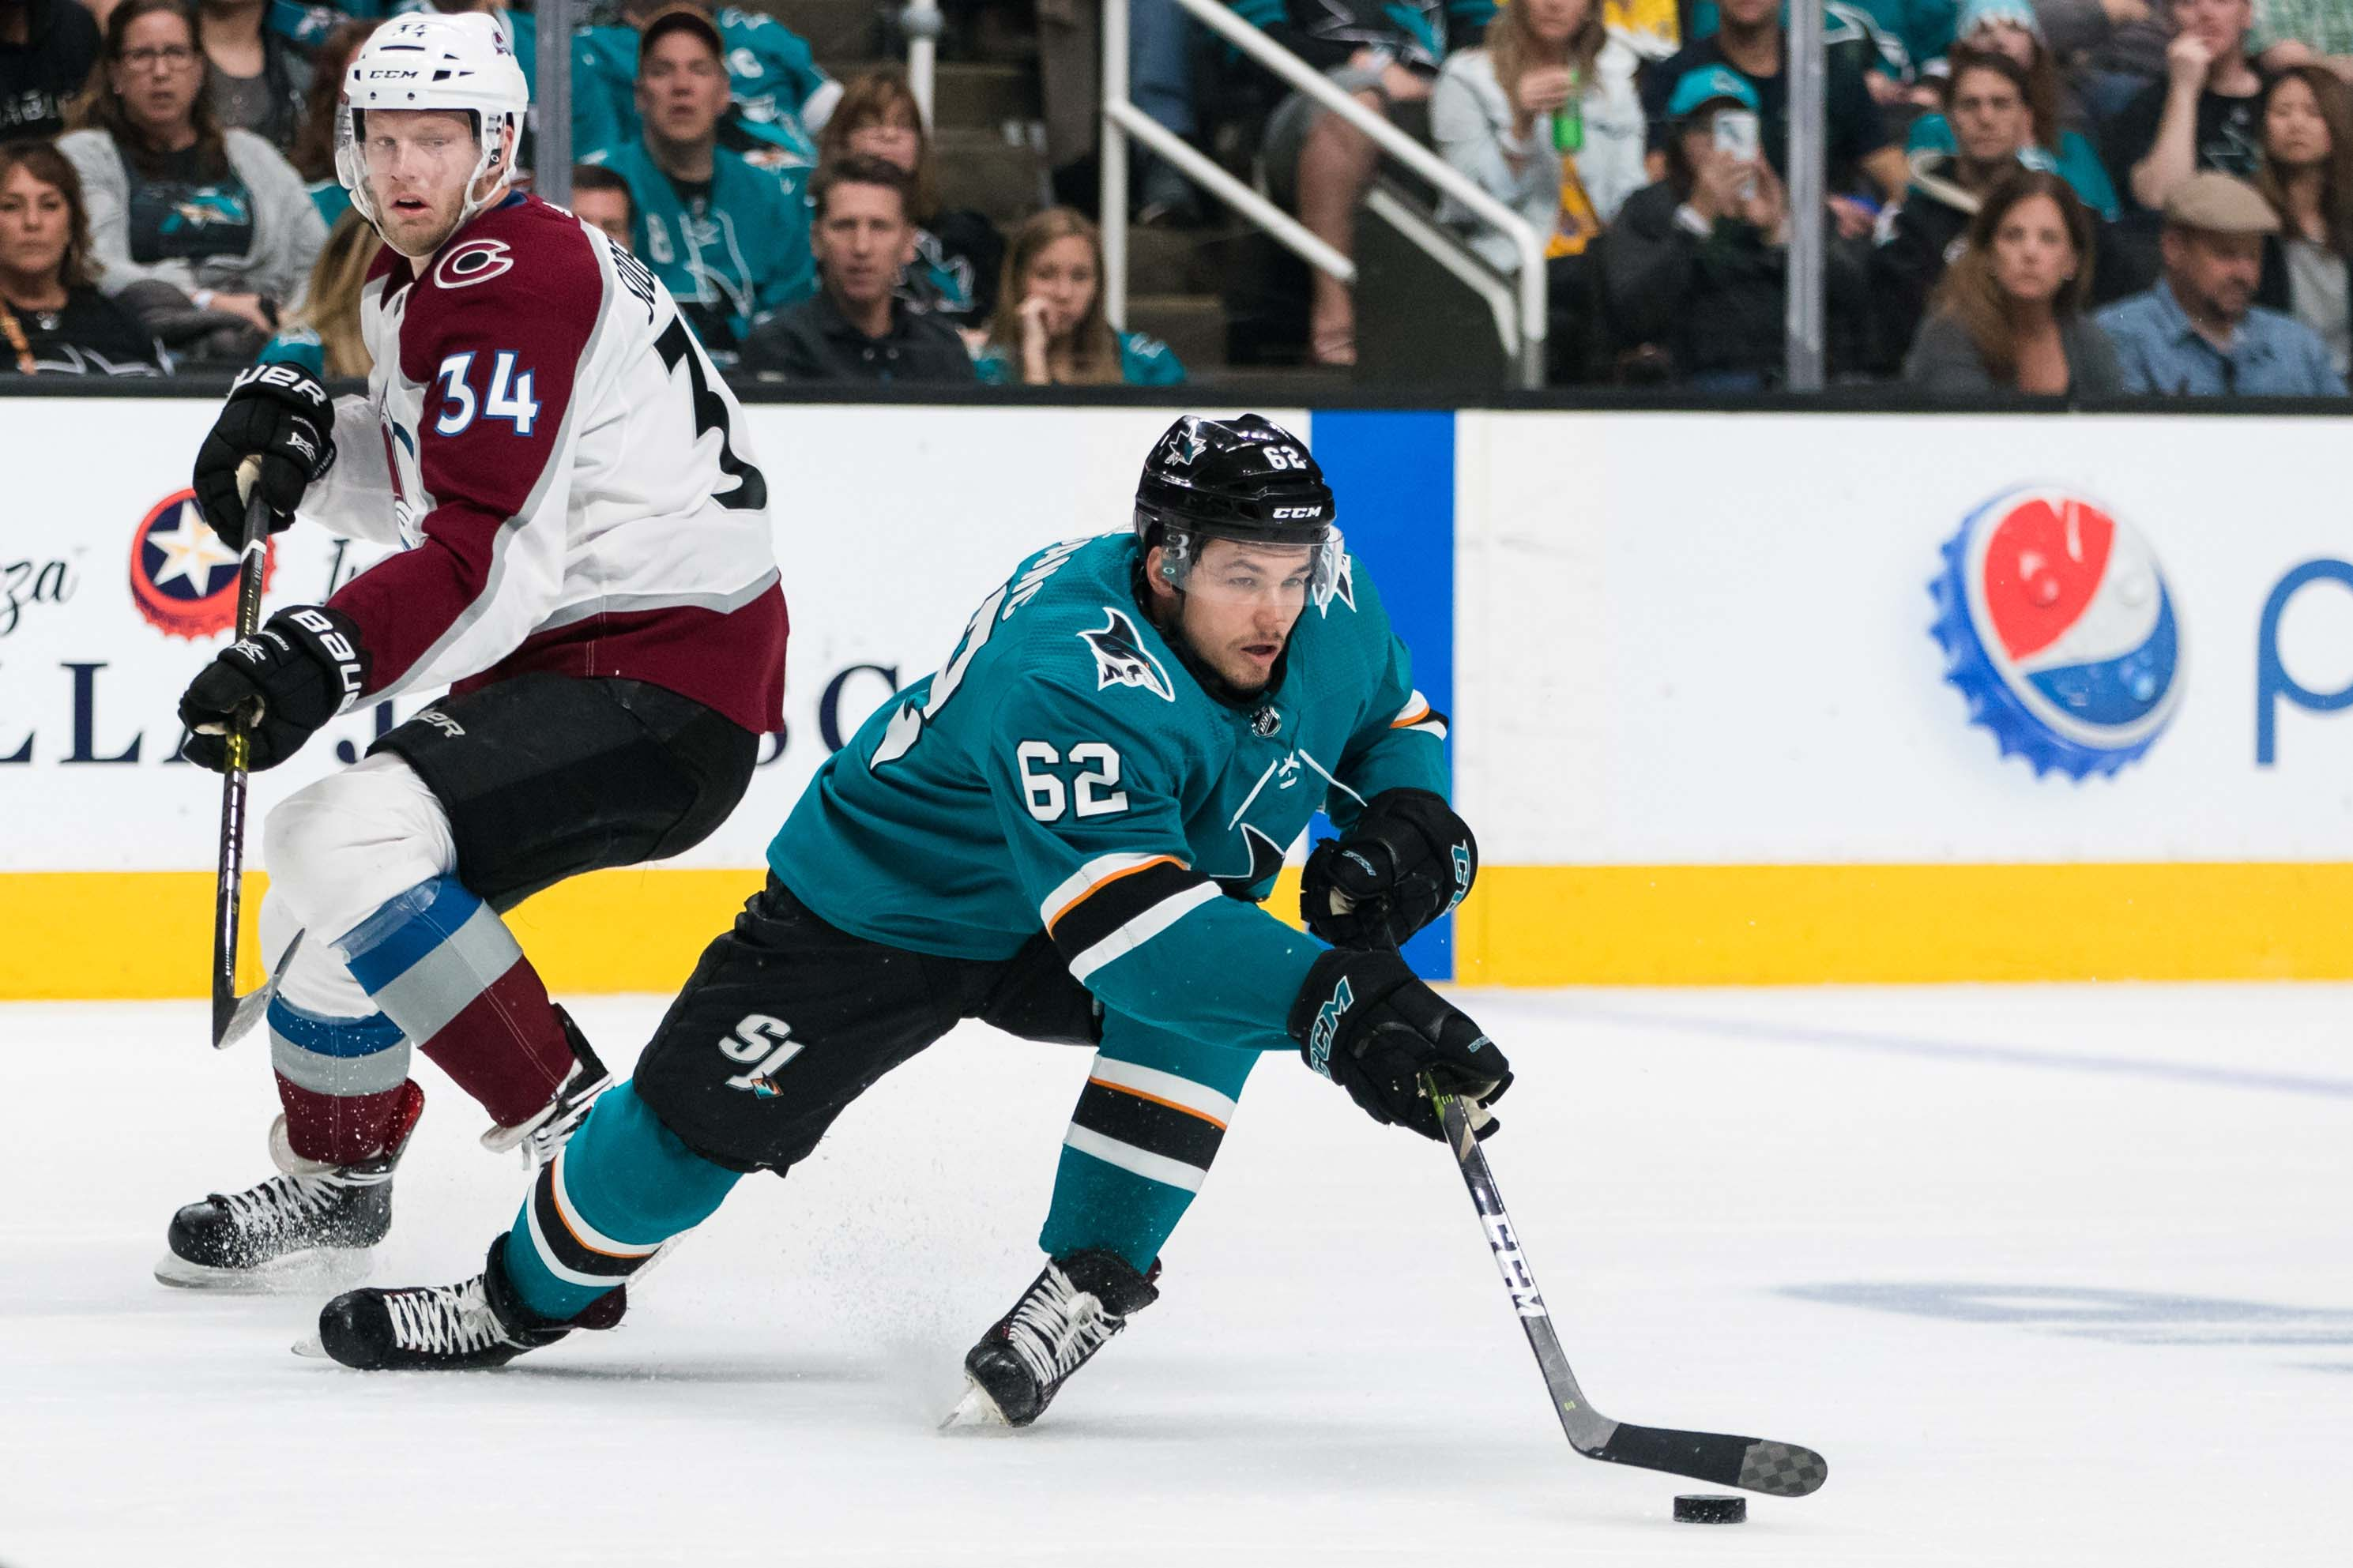 Apr 28, 2019; San Jose, CA, USA; San Jose Sharks right wing Kevin Labanc (62) reaches for the puck against the Colorado Avalanche in the first period of game two of the second round of the 2019 Stanley Cup Playoffs at SAP Center at San Jose. Mandatory Cre